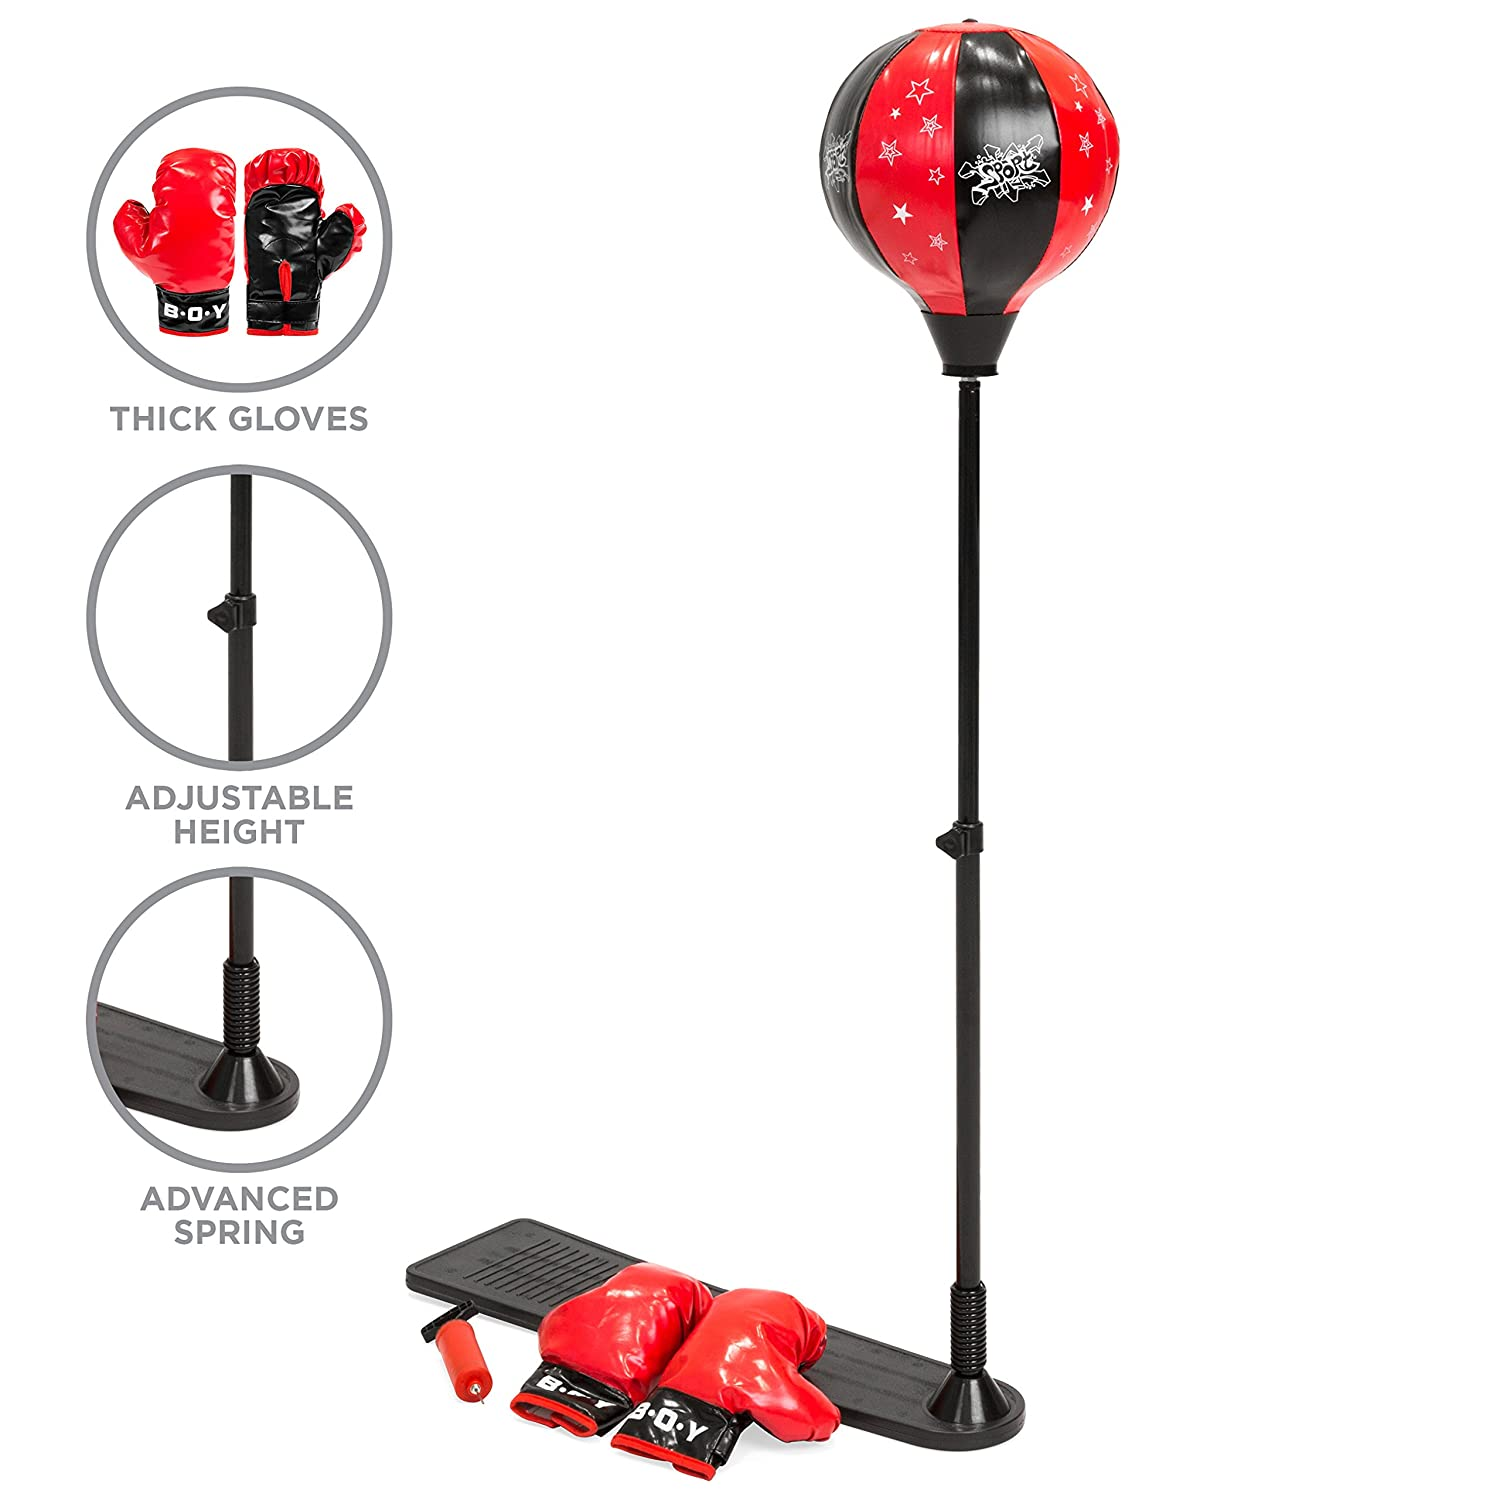 Amazon.com: Best Choice Products Kids Adjustable Standing Boxing Punching Ball Set w/ Advanced Spring, Metal Stand, Gloves - Red: Toys & Games